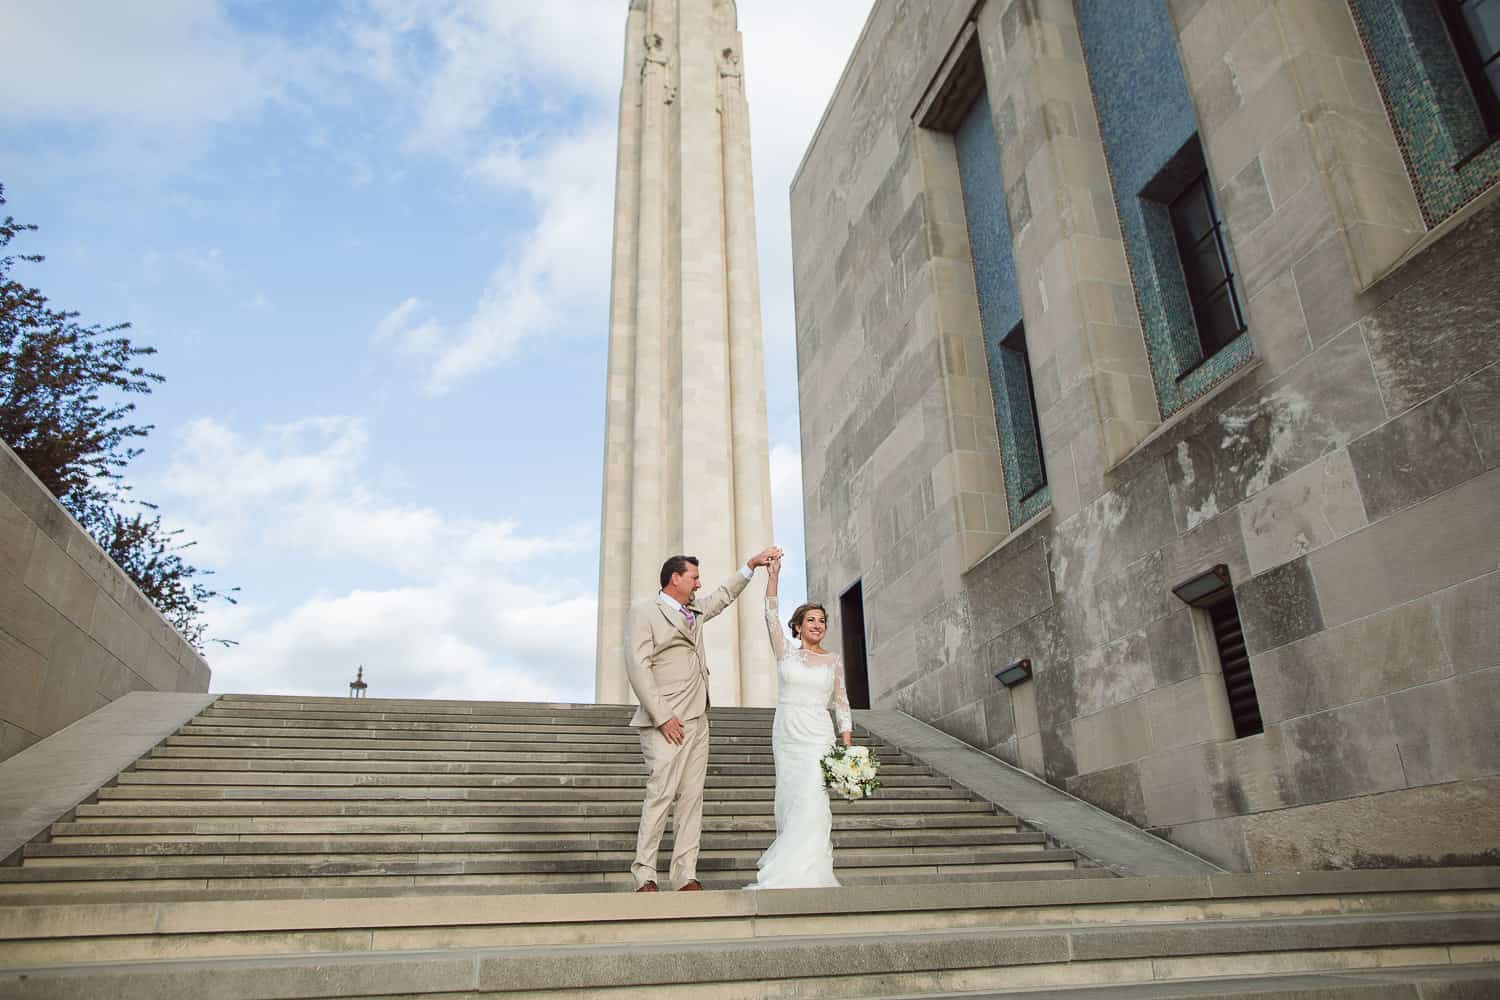 Wedding portraits at Liberty Memorial in Kansas City